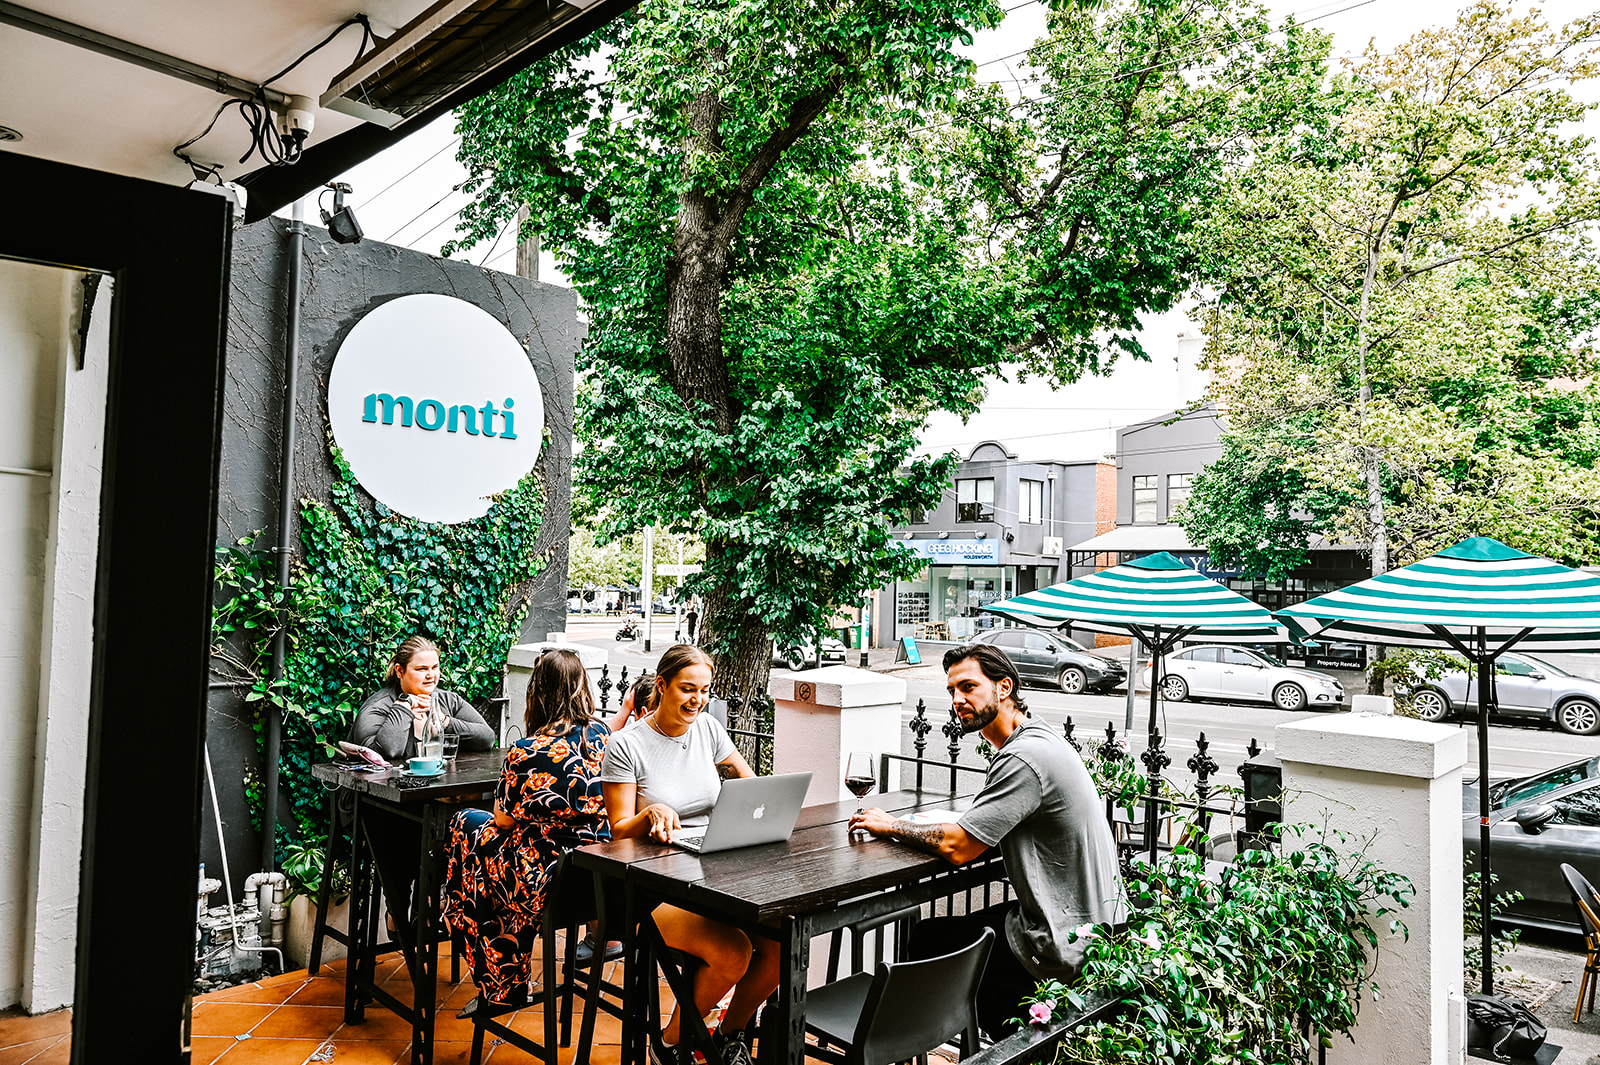 Choose a Reputed Café for a Memorable Experience - montifoodandwine